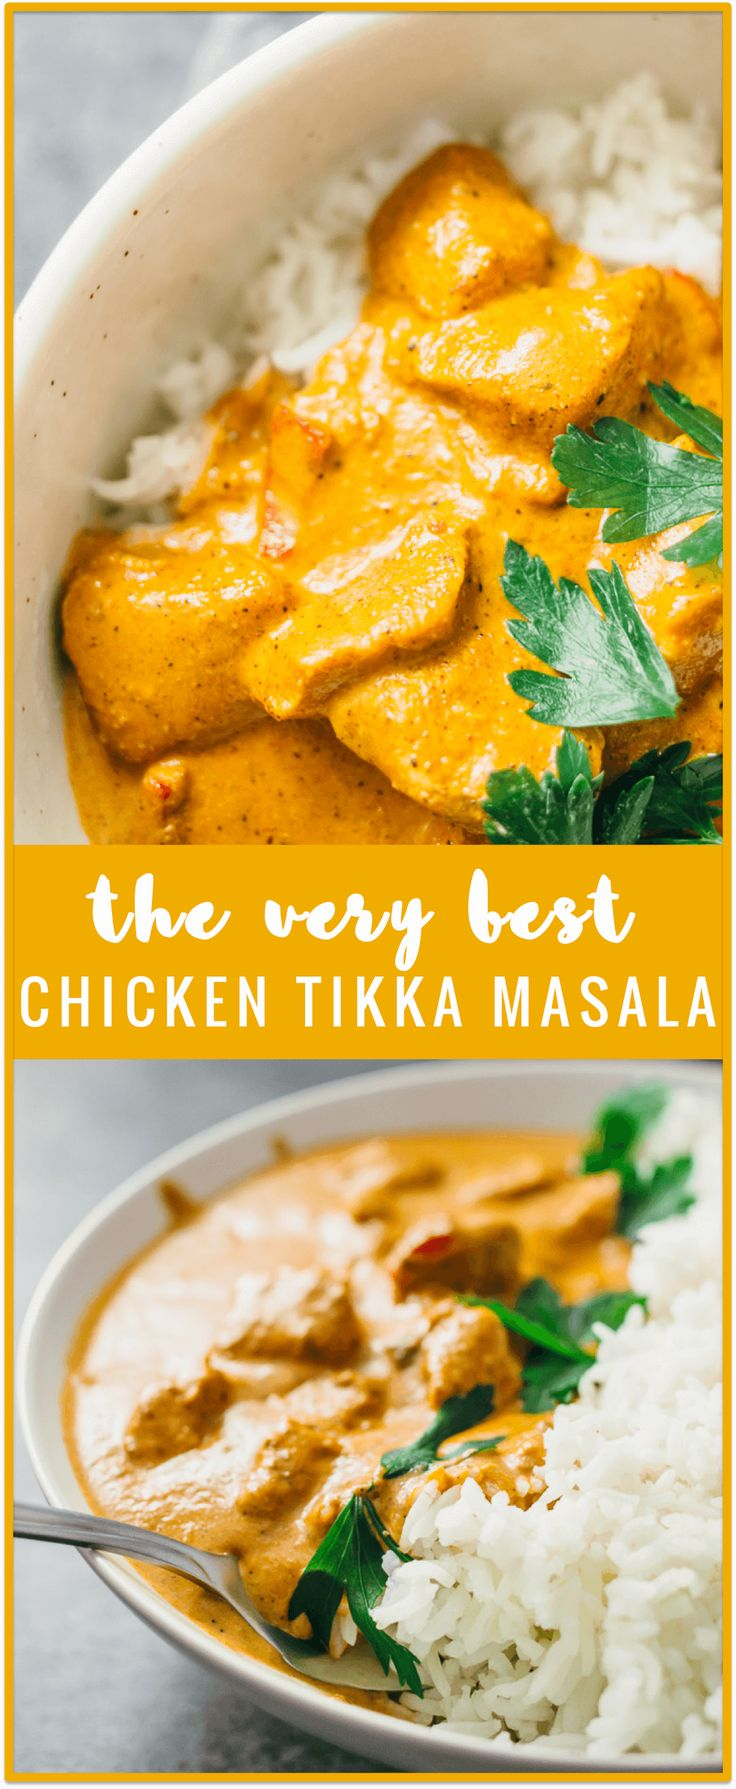 Best chicken tikka masala — it's restaurant quality, made from scratch, and easy to make. If chicken tikka masala is your go-to dish to order at Indian restaurants, then you've got to try this! - savorytooth.com, slow cooker, crockpot, easy, authentic, mild, recipes, healthy, coconut milk, instant pot, best, dairy free